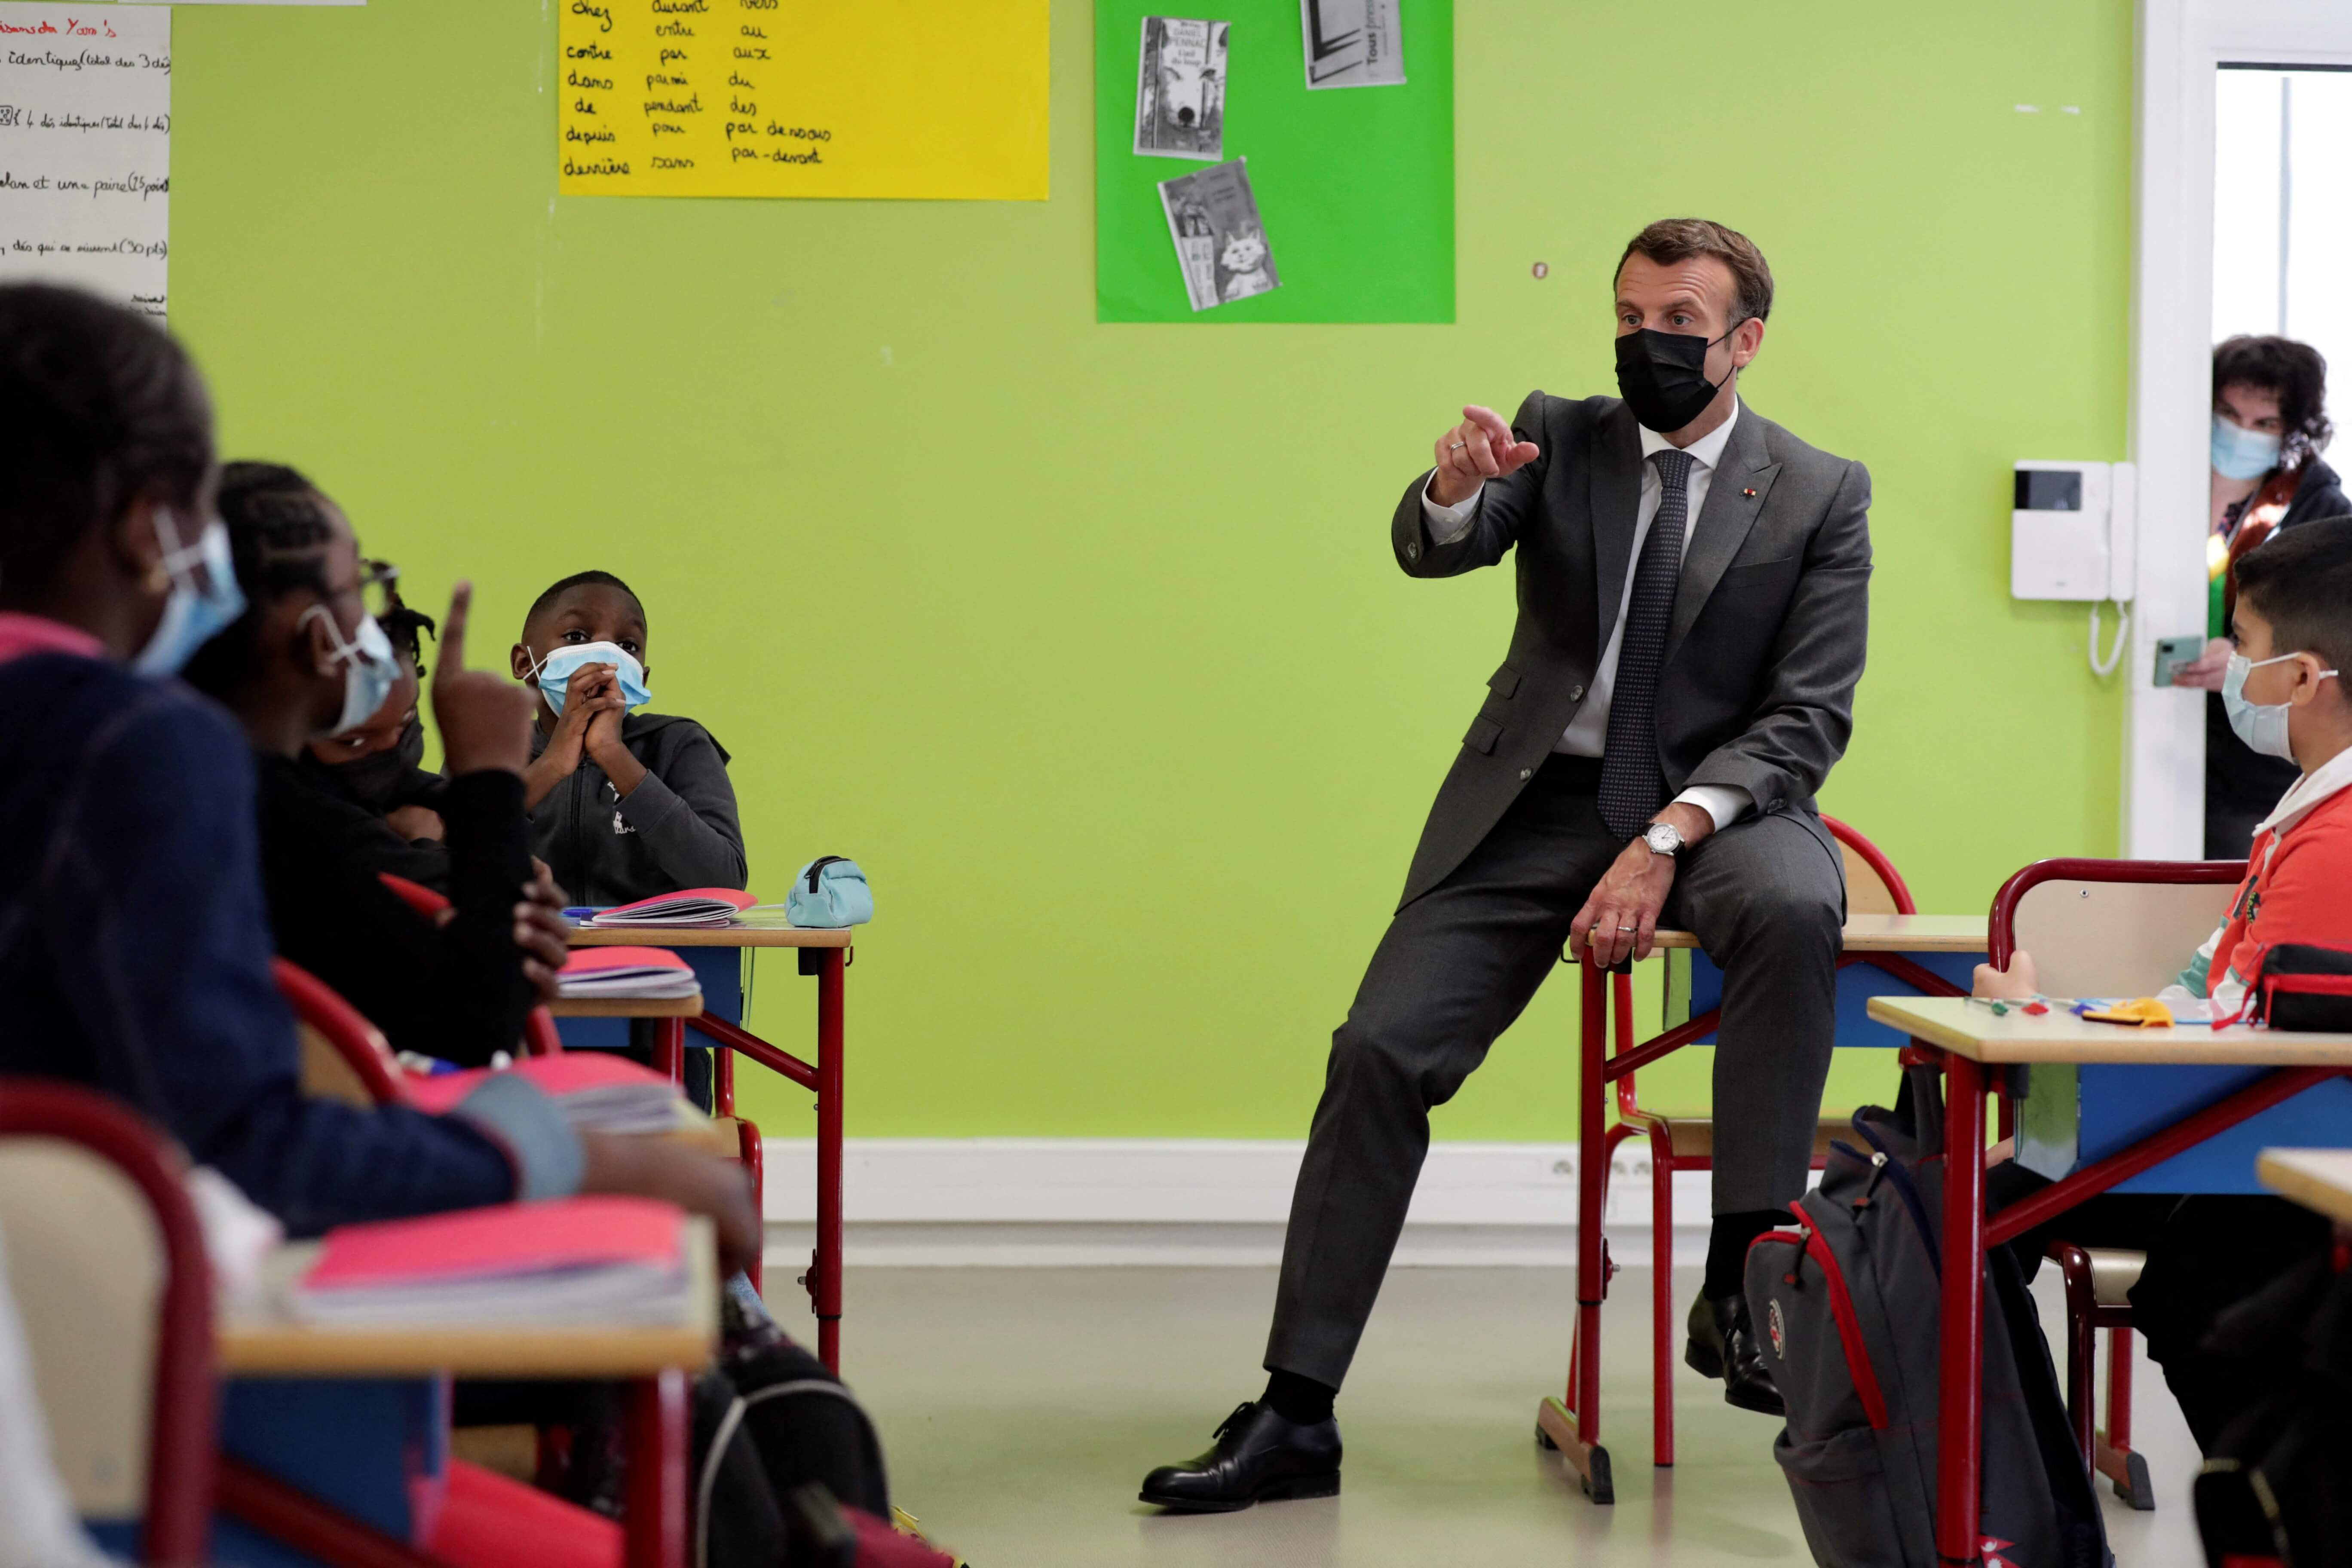 French primary schools reopen as COVID-19 third wave eases